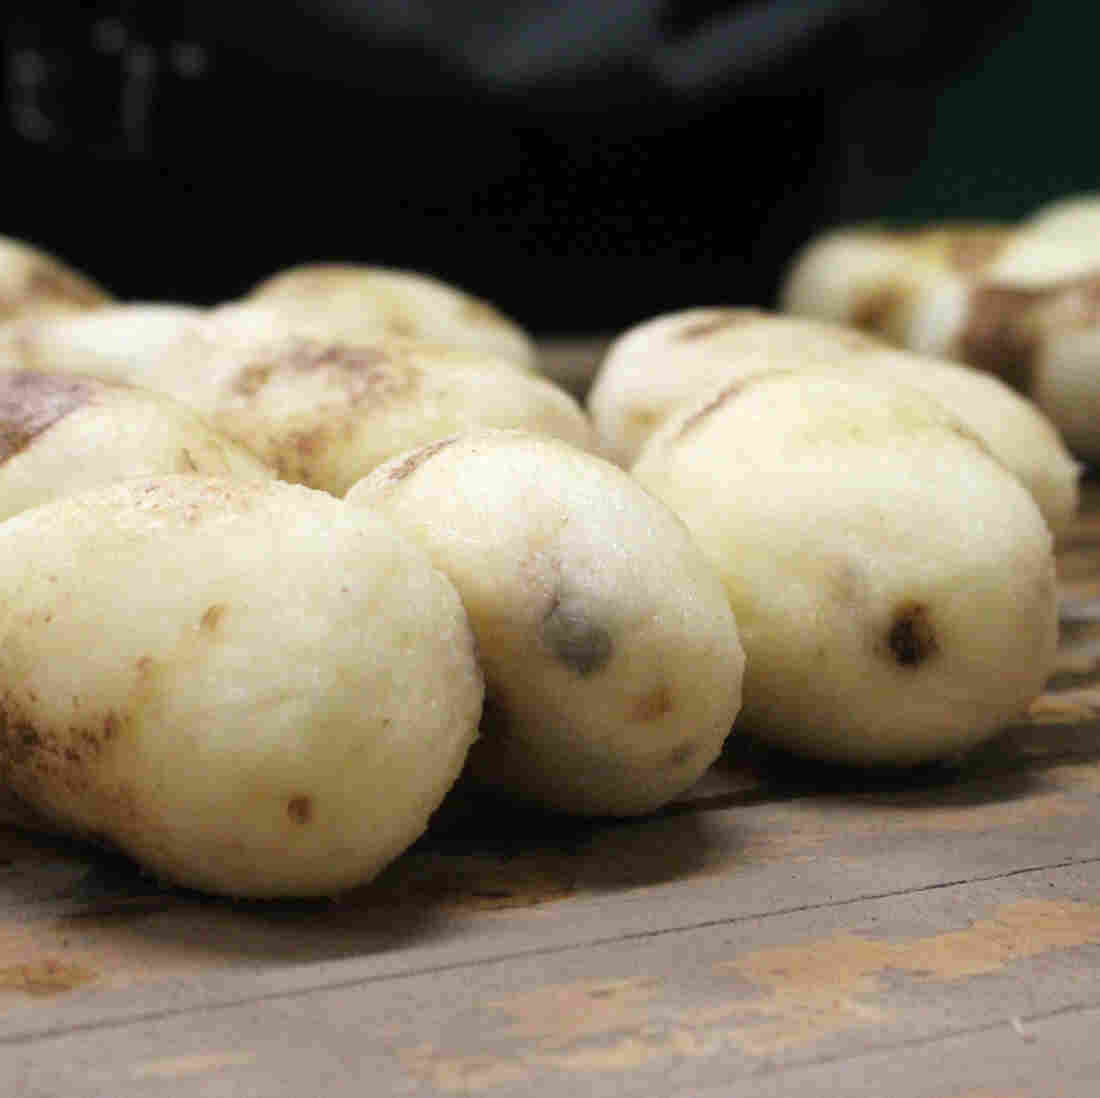 GMO Potatoes Have Arrived. But Will Anyone Buy Them?